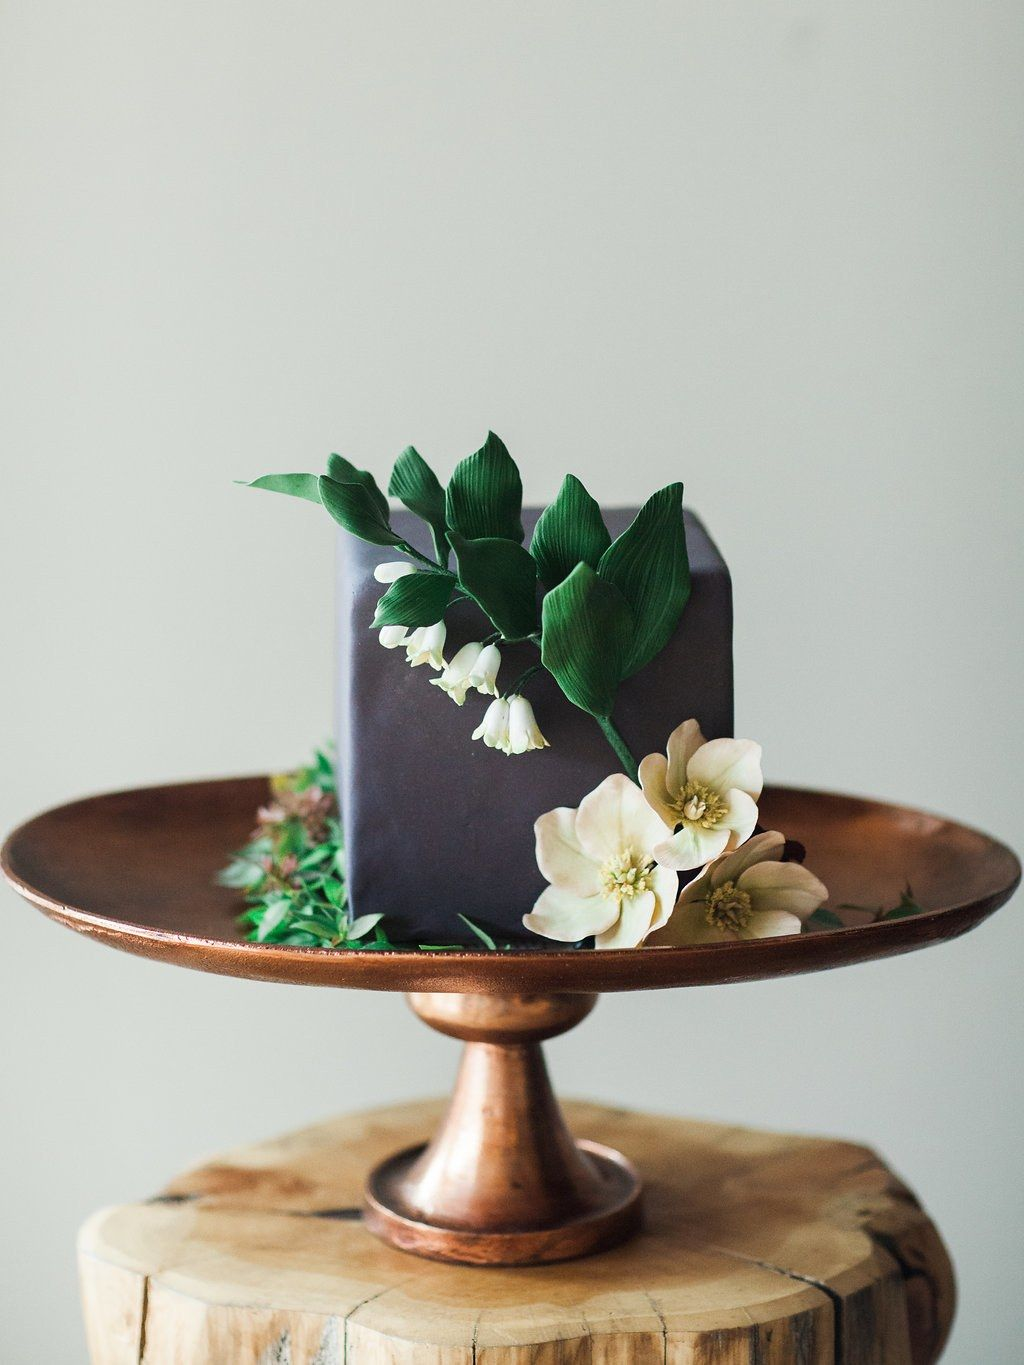 These onetier wedding cakes are legit works of art savannah